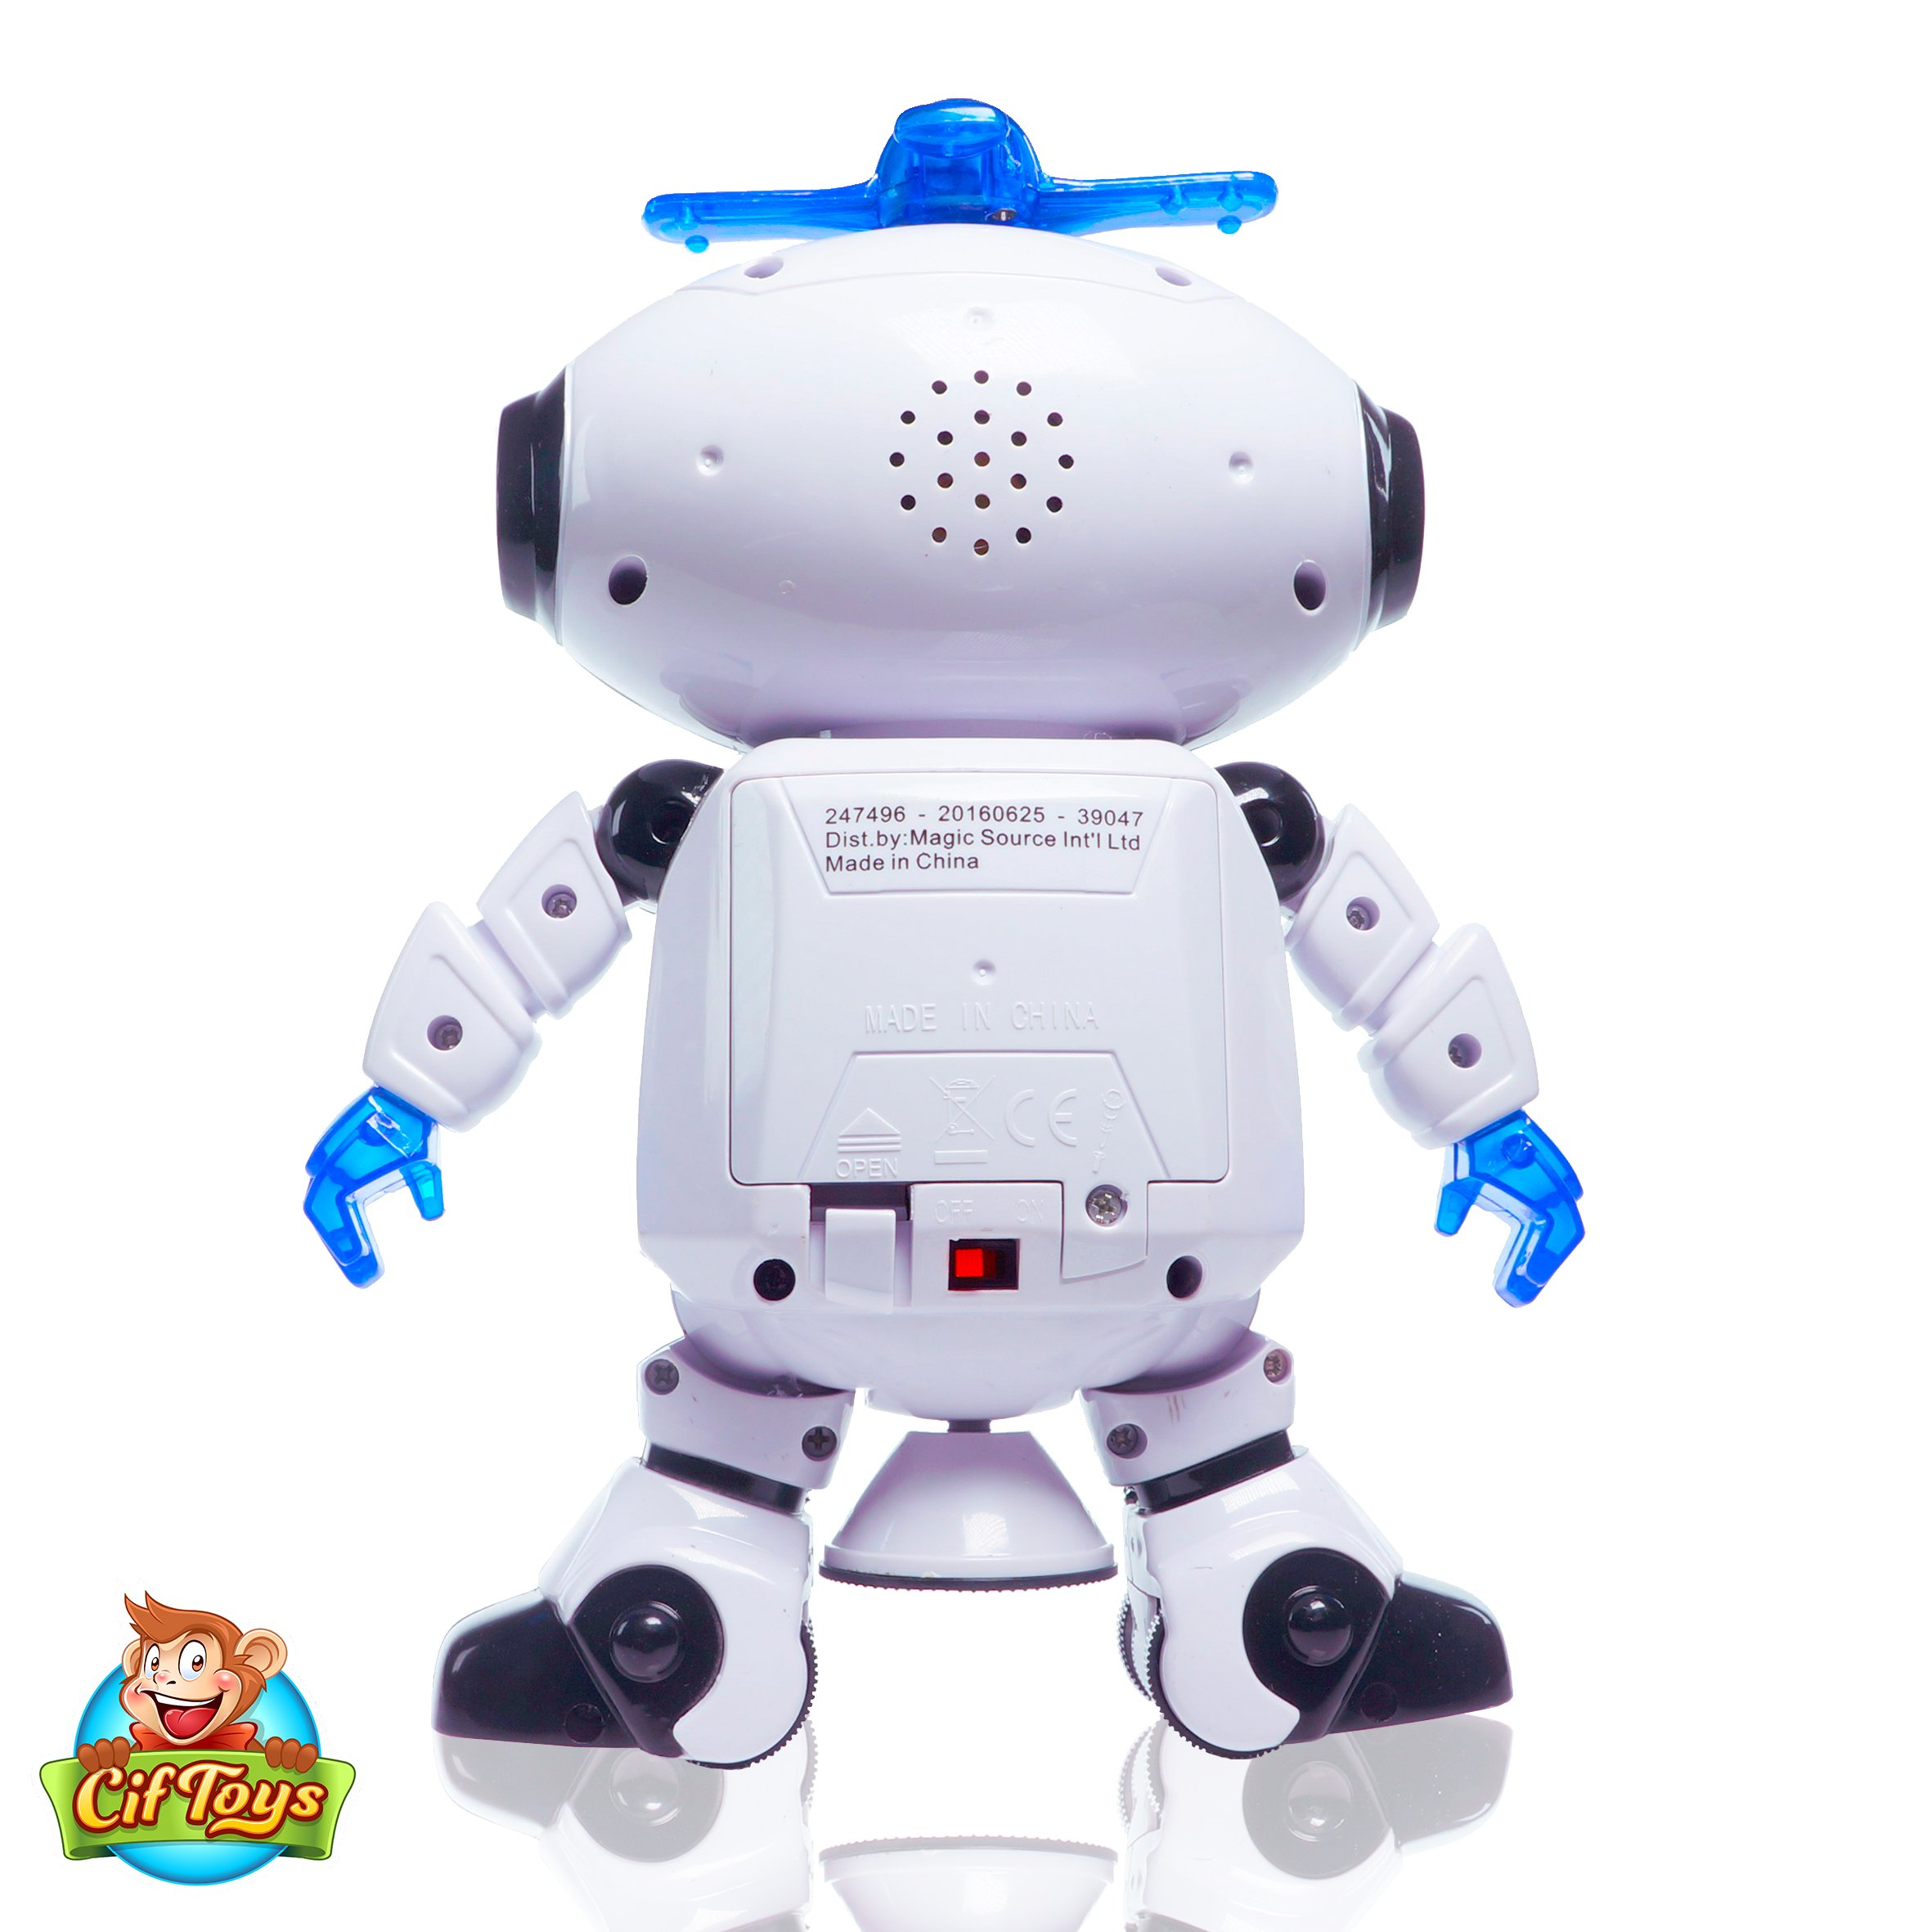 Boys Toys Electronic Walking Dancing Robot Toy - Toddler Toys - Best Gift for Boys and Girls 3 years old by CifToys (Image #6)